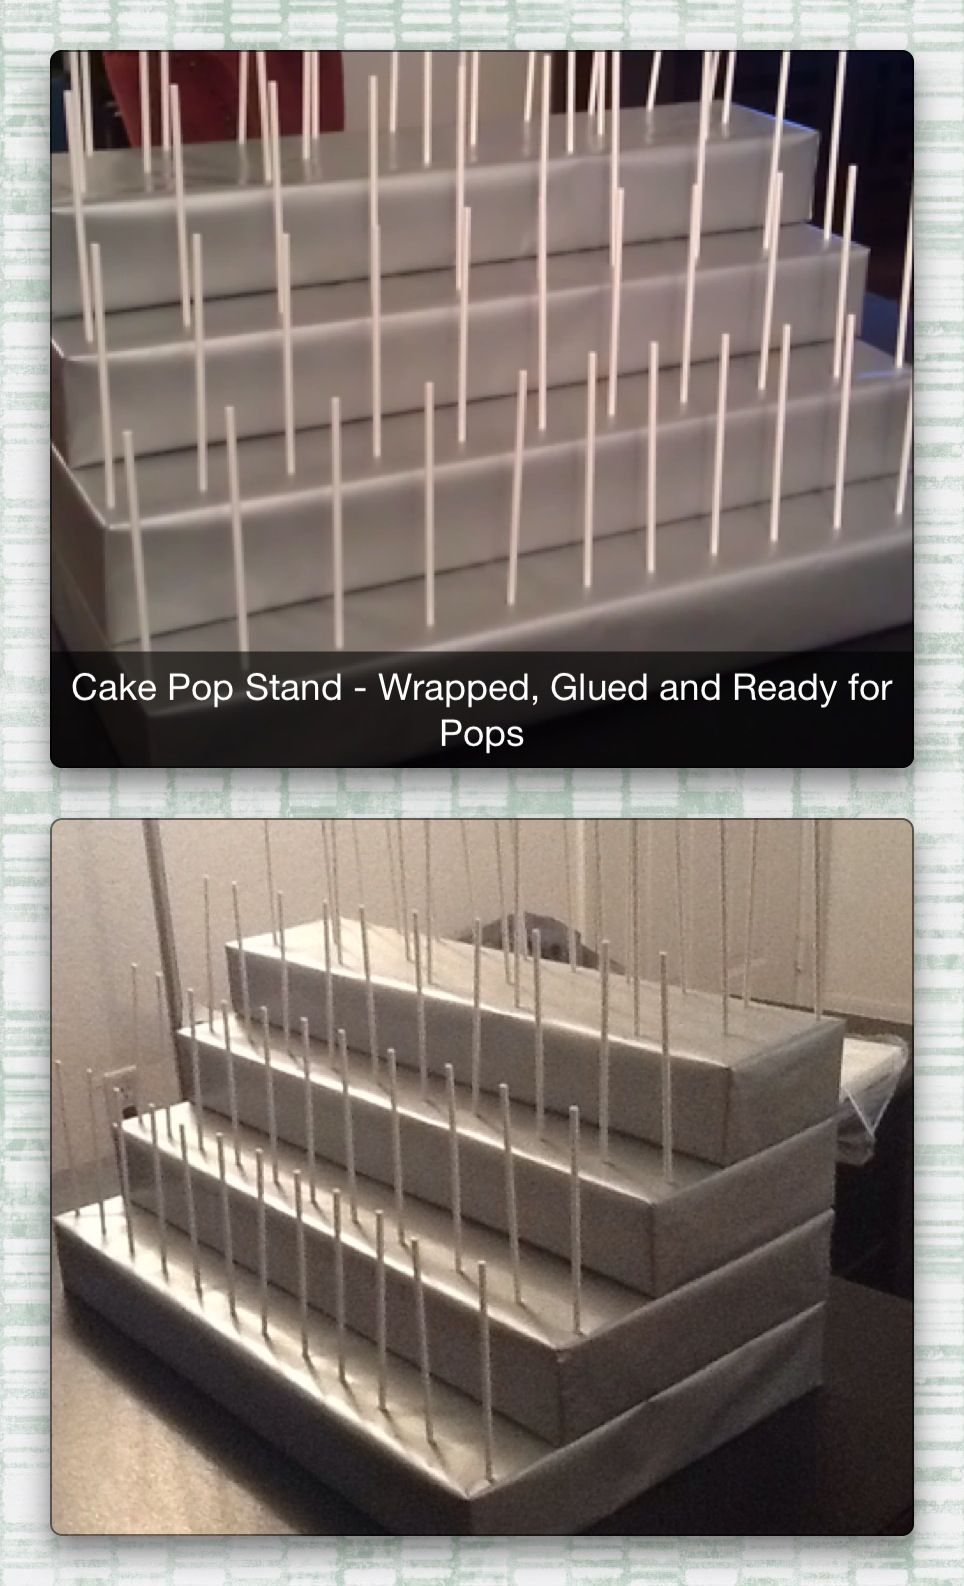 Completed 4 Tiered Cake Pop Stand Cake Pop Chronicles In